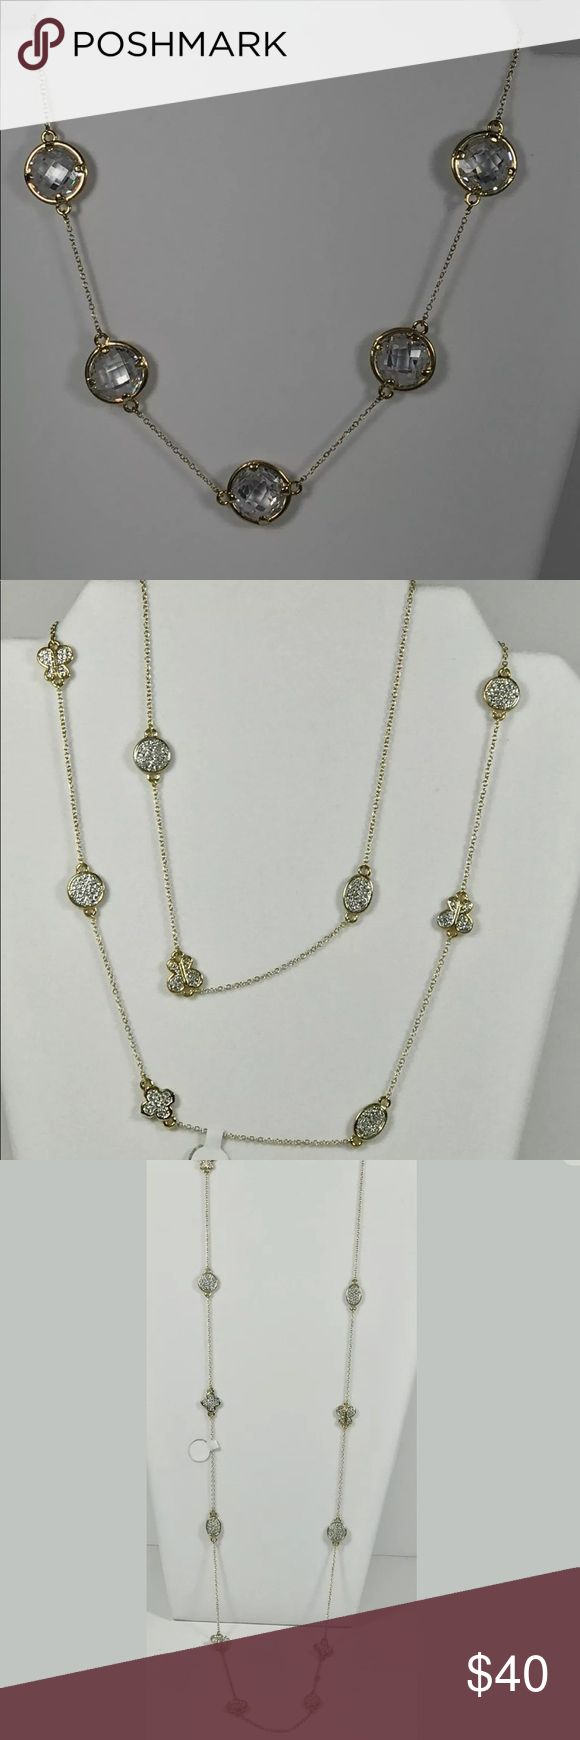 Lot of four Nordstrom long necklaces. I've been asked by a fashion jewelry wholesaler to help liquidate some of her stock for her to make room for incoming inventory. Check out my other listings as I will be listing tons of very good quality fashion jewelry at great prices. These were pieces   This listing is for 4 long necklaces. They were sold at Nordstrom for $75-100 each  They are all new  This is a great value for your own collection, for gifts or for resale Nordstrom Jewelry Necklaces